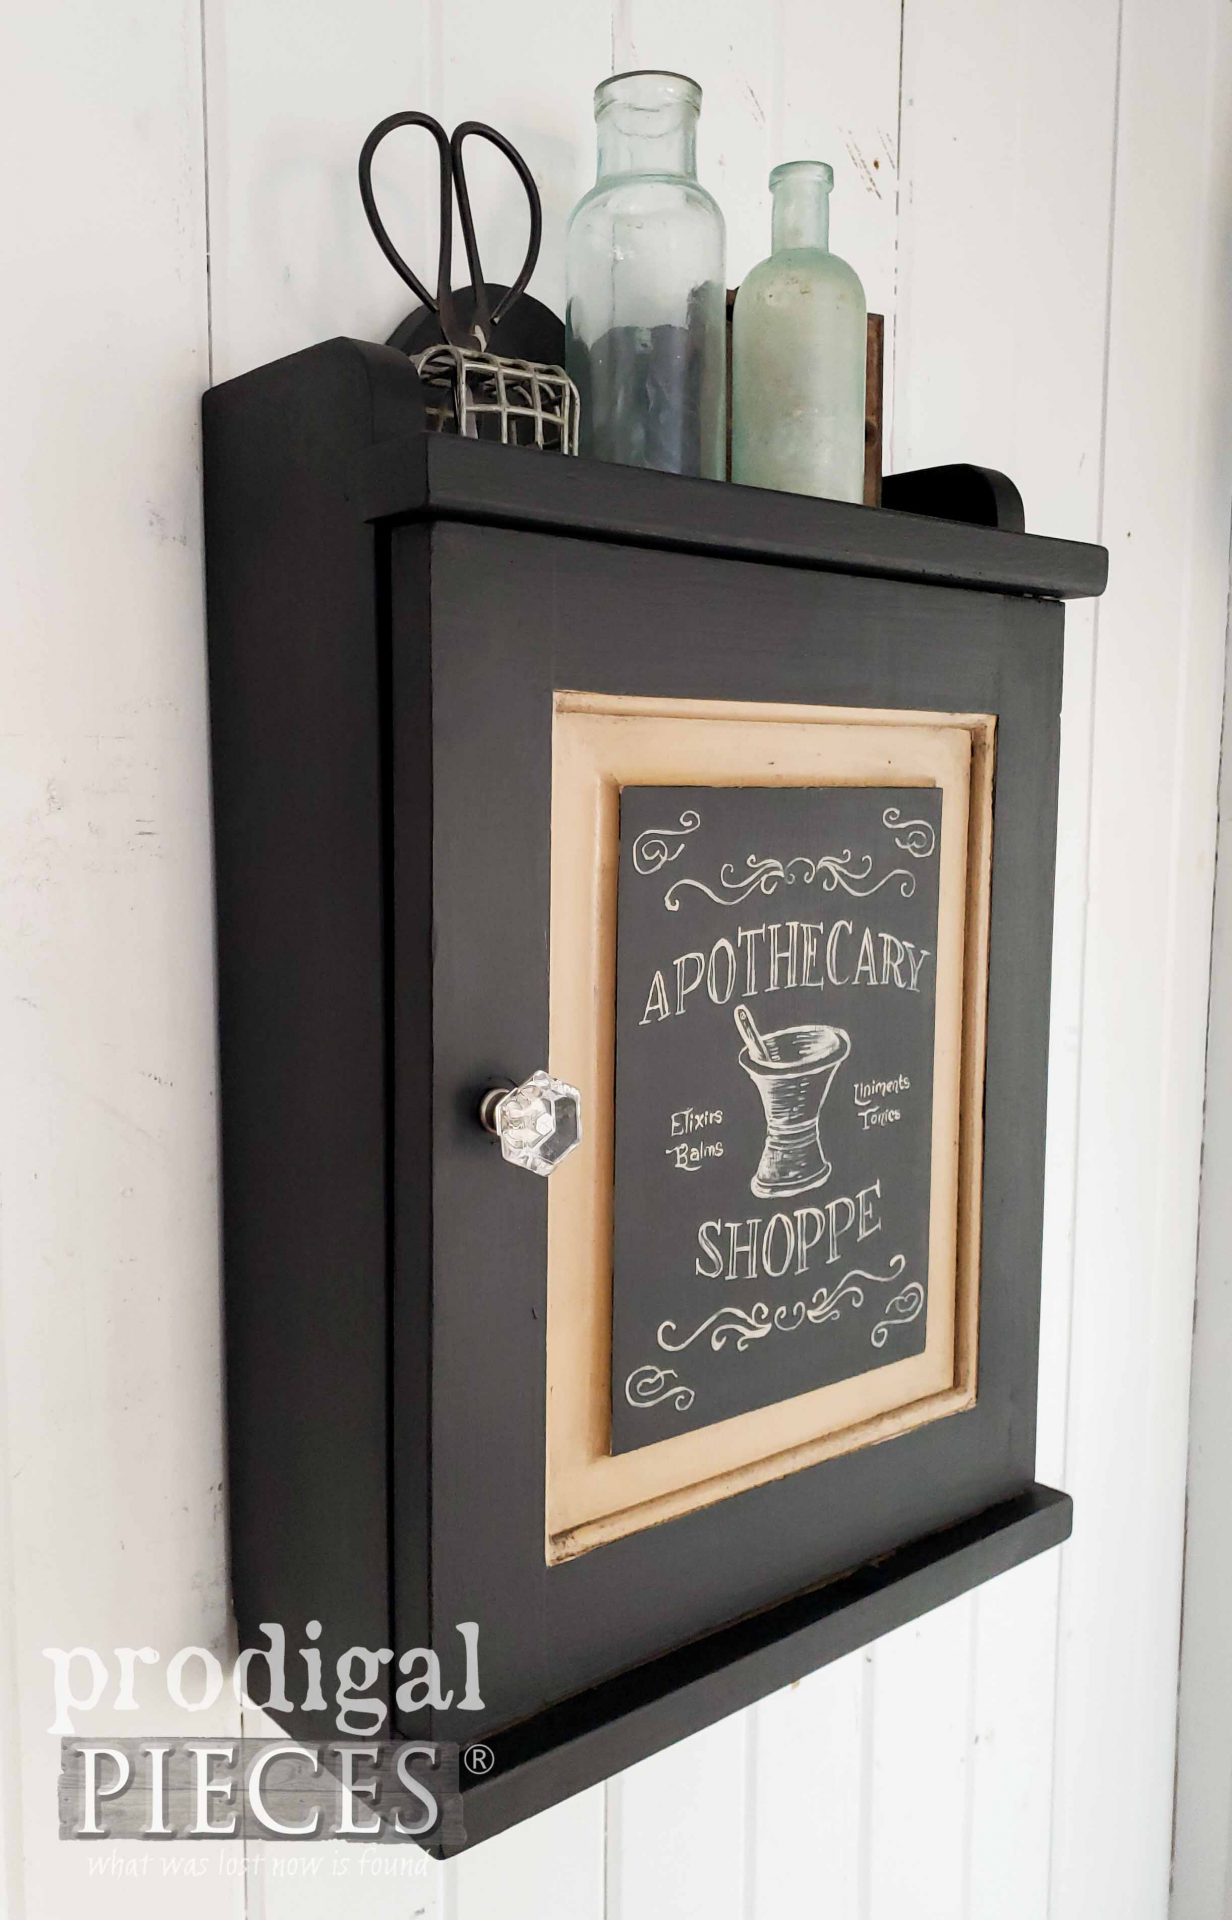 Industrial Farmhouse Black Medicine Cabinet by Larissa of Prodigal Pieces | prodigalpieces.com #prodigalpieces #home #diy #farmhouse #homedecor